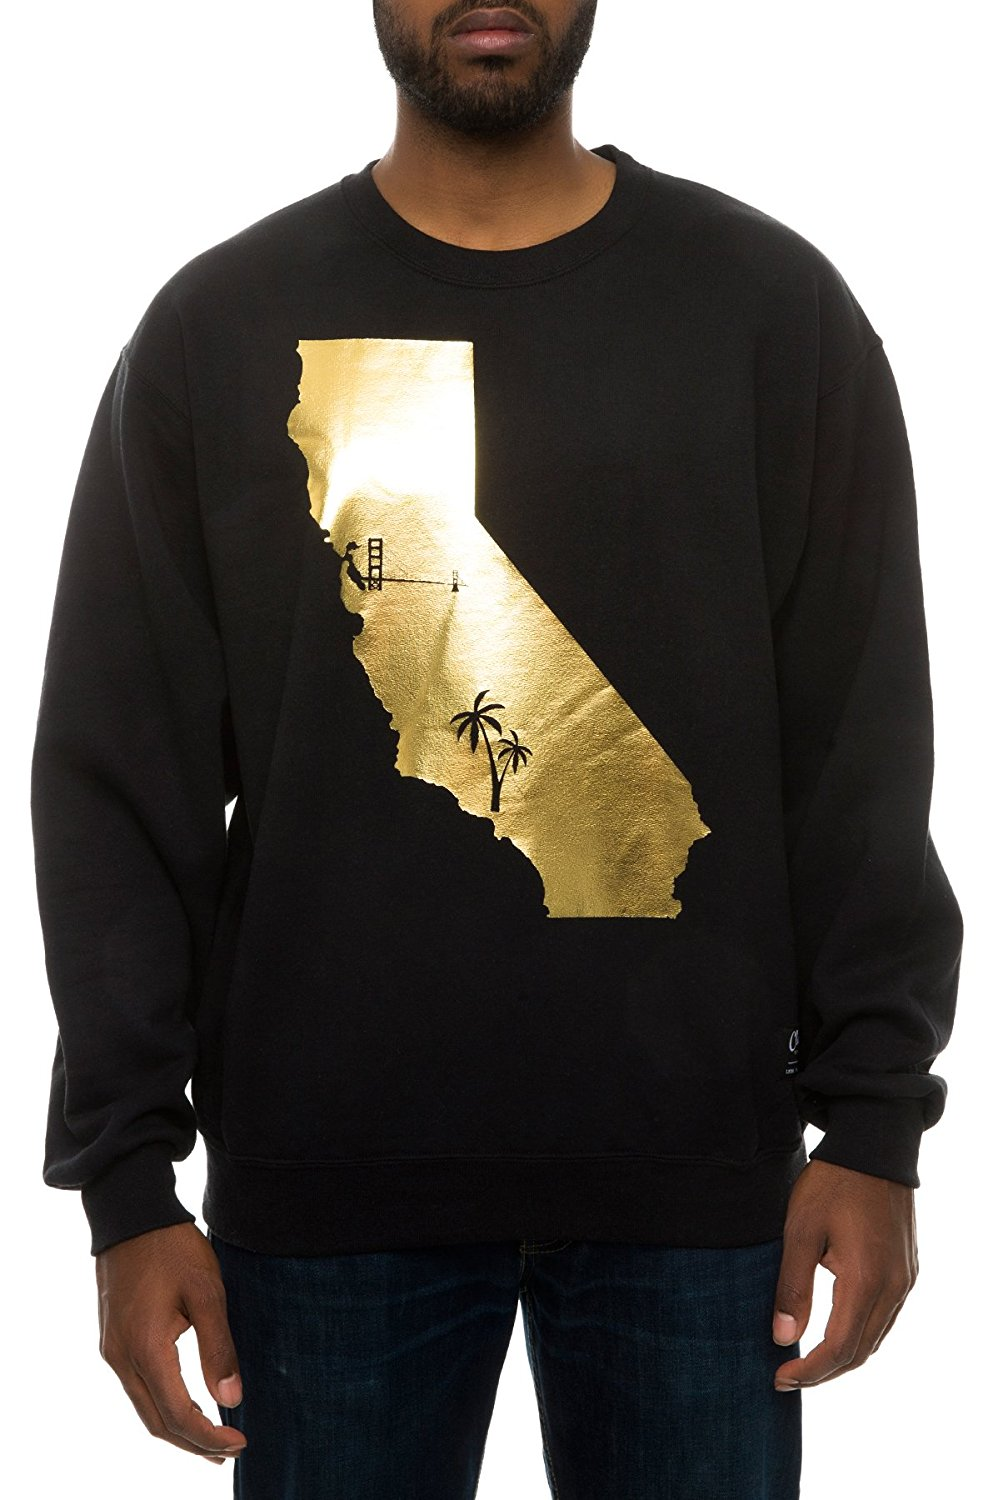 Classy Brand Golden State Bay To L.A. California Sweatshirt